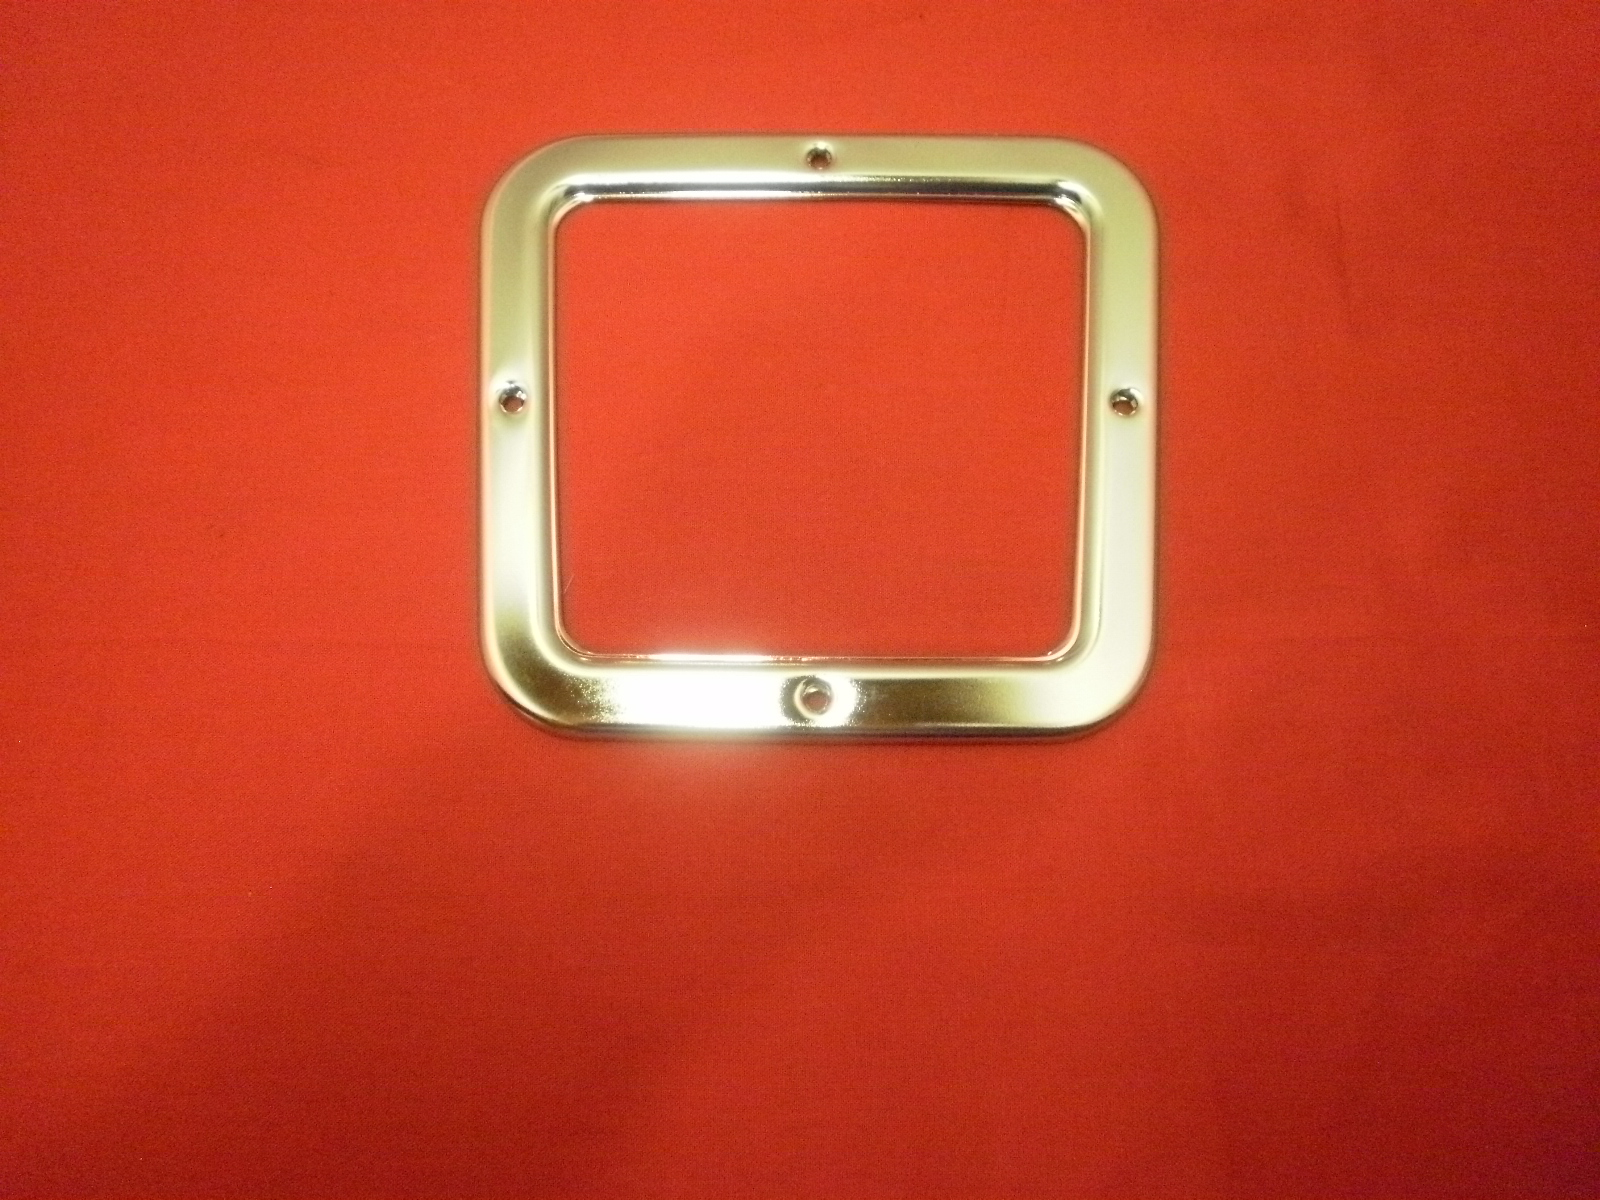 70-81 Camaro/Firebird Shifter Boot Retainer (Chrome) (R)